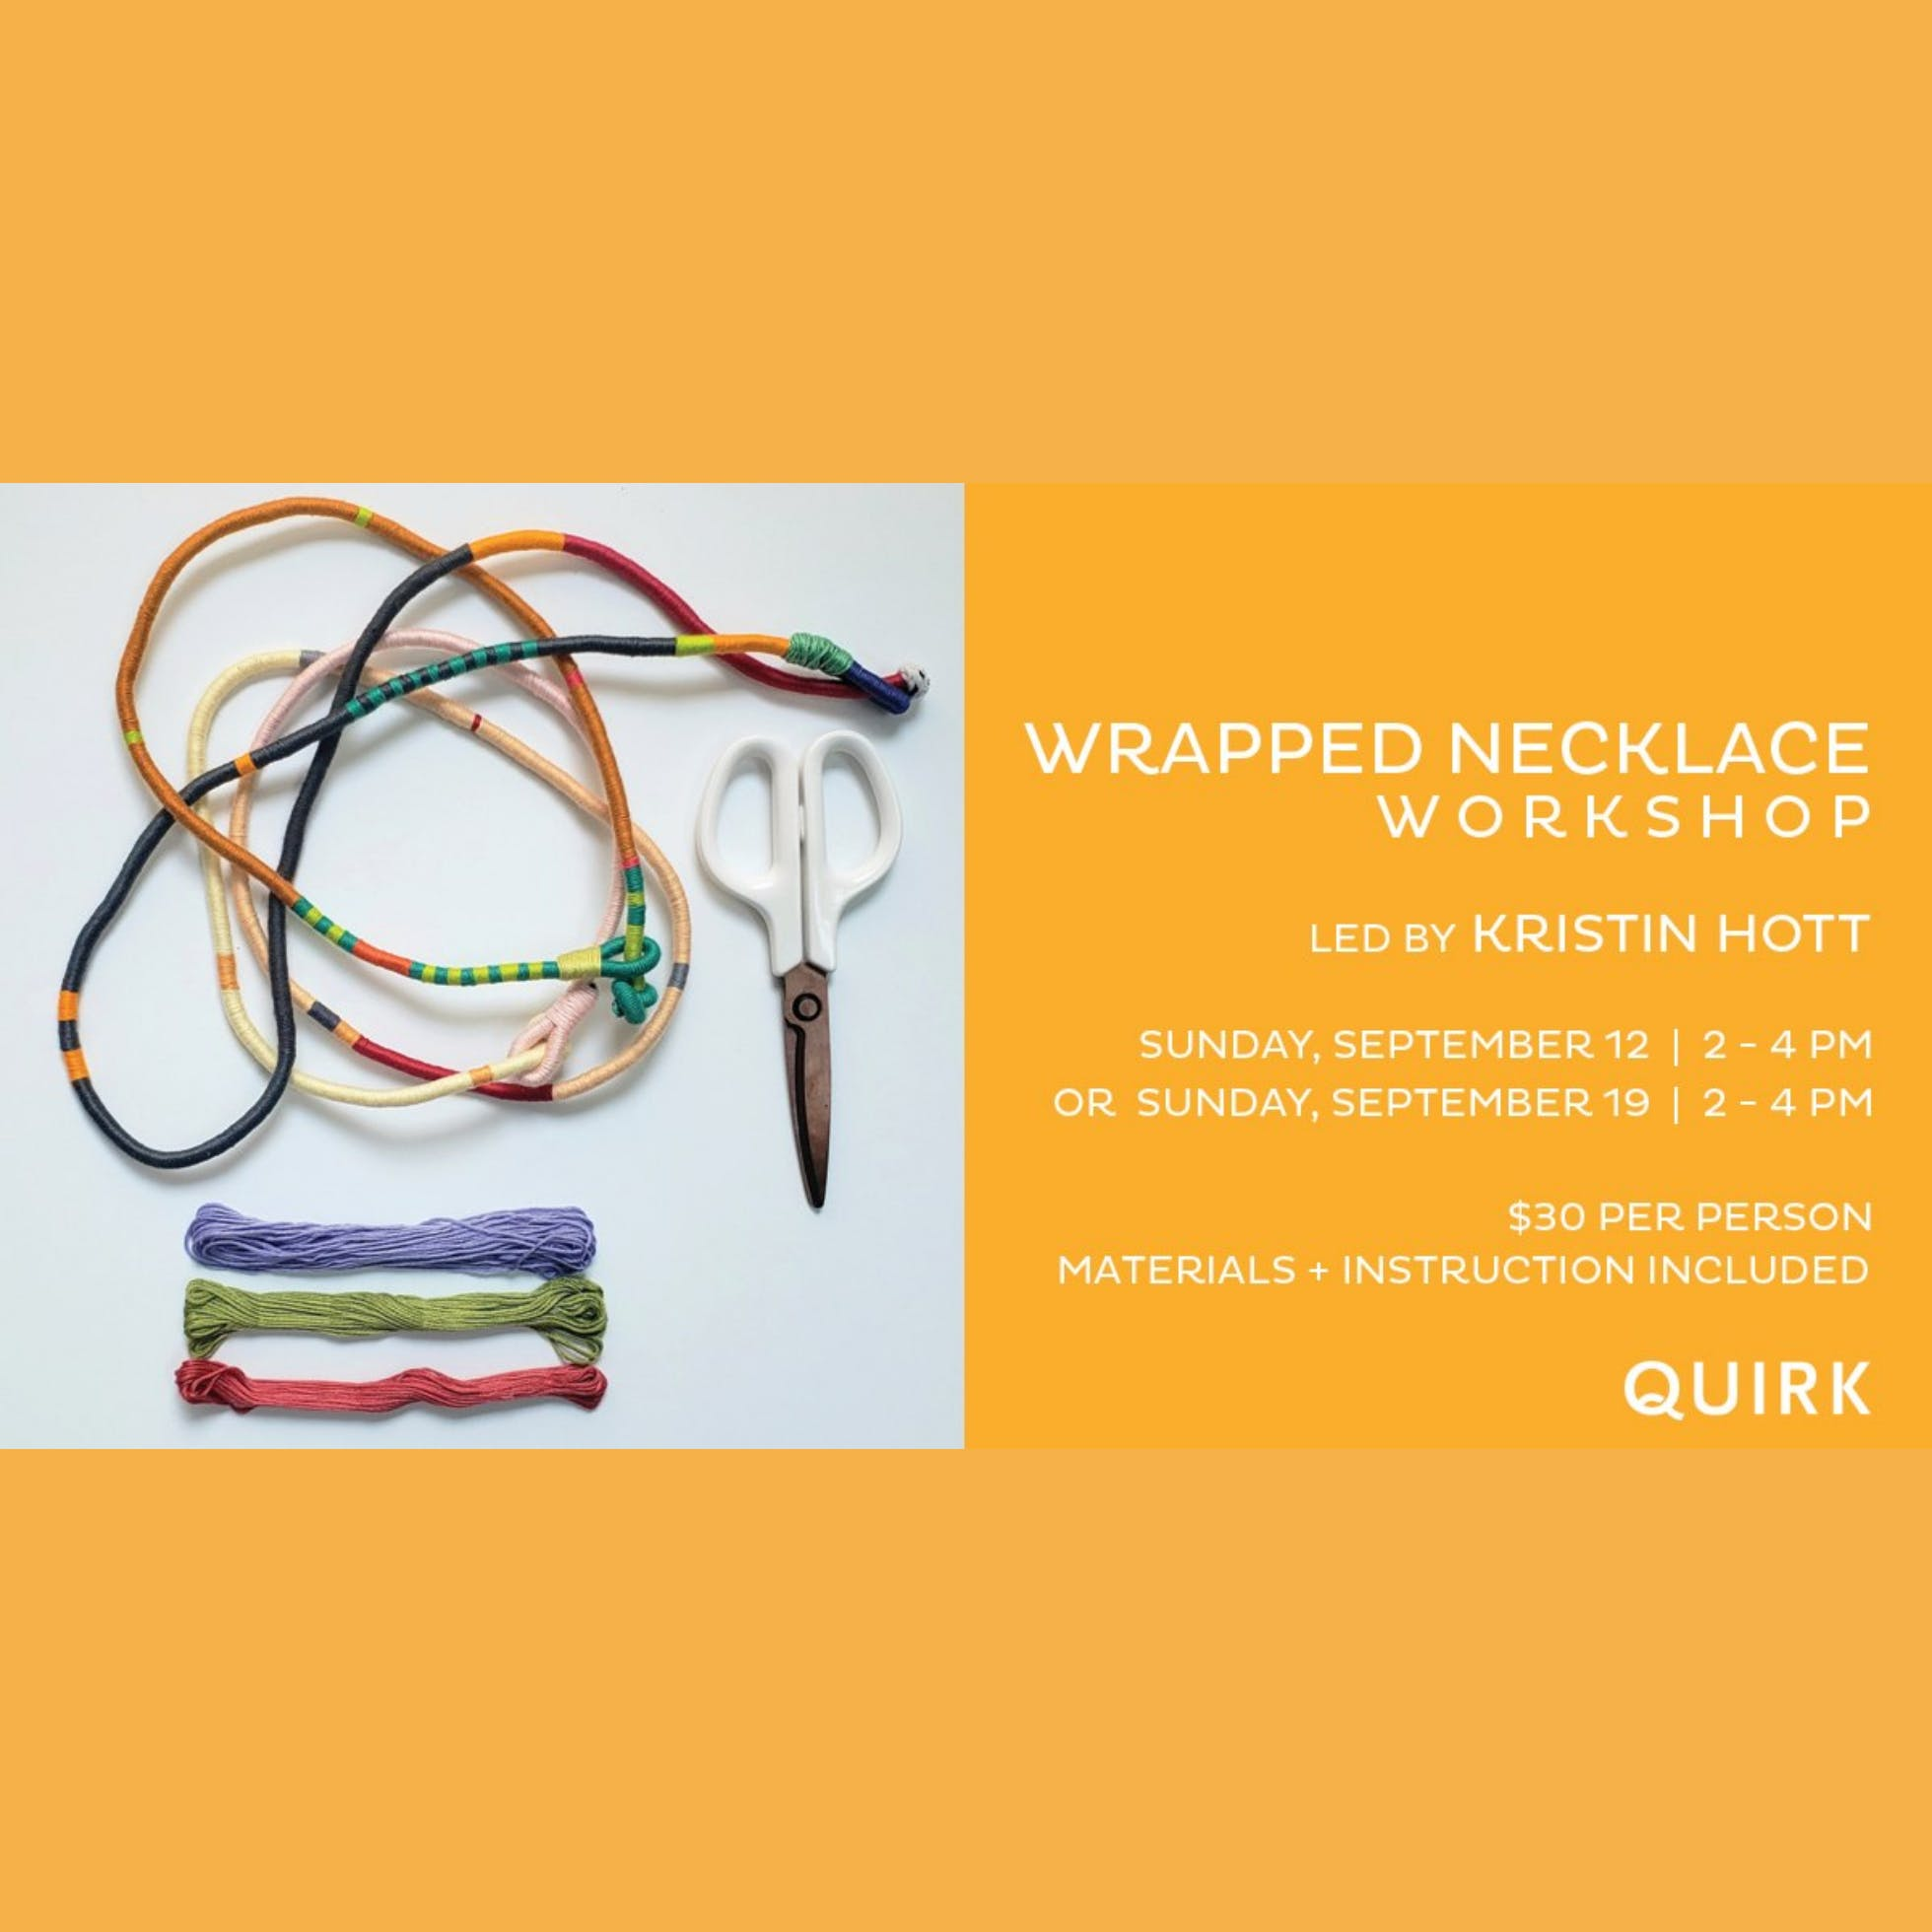 Wrapped Necklace Workshop with Kristin Hott